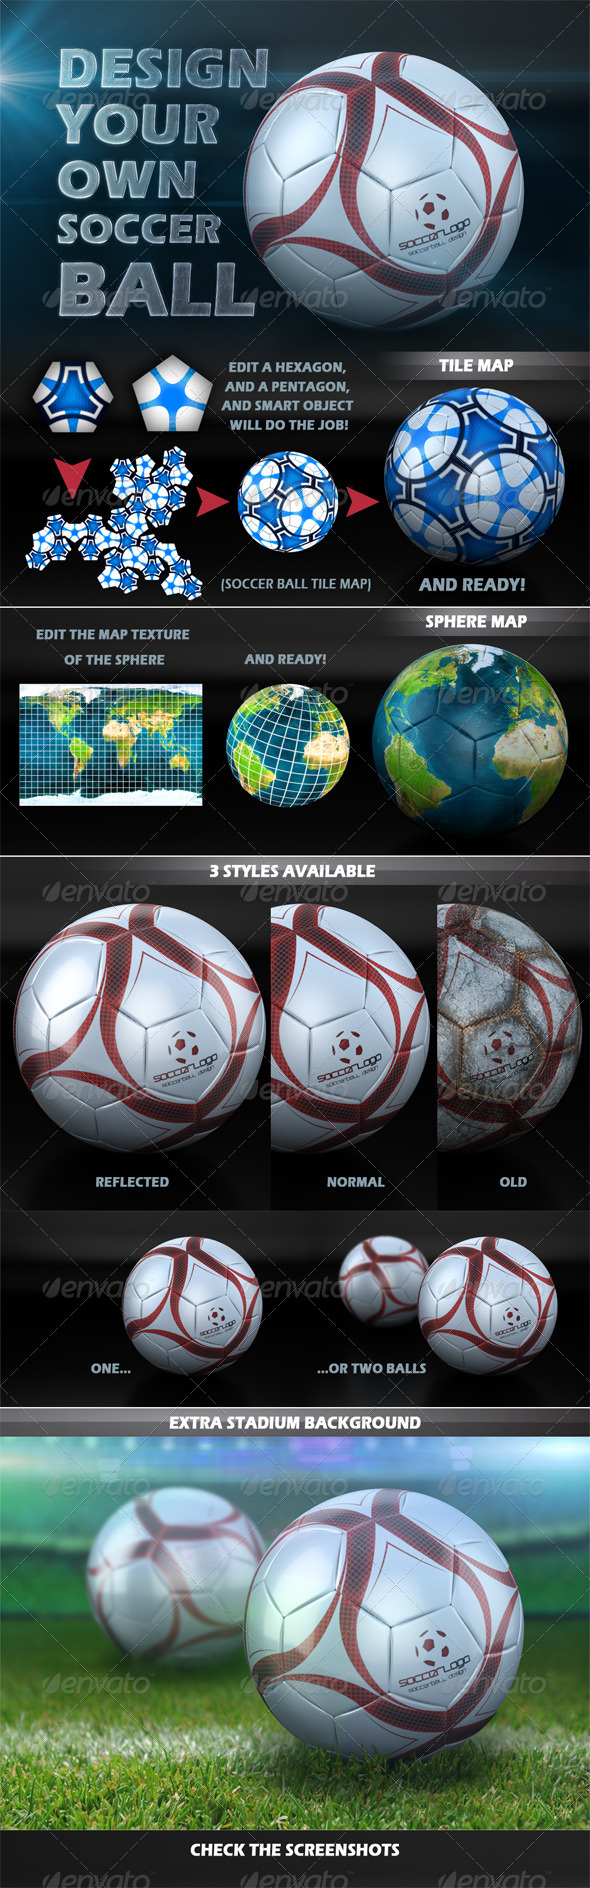 Soccer Ball Design Creator by MRS401 | GraphicRiver